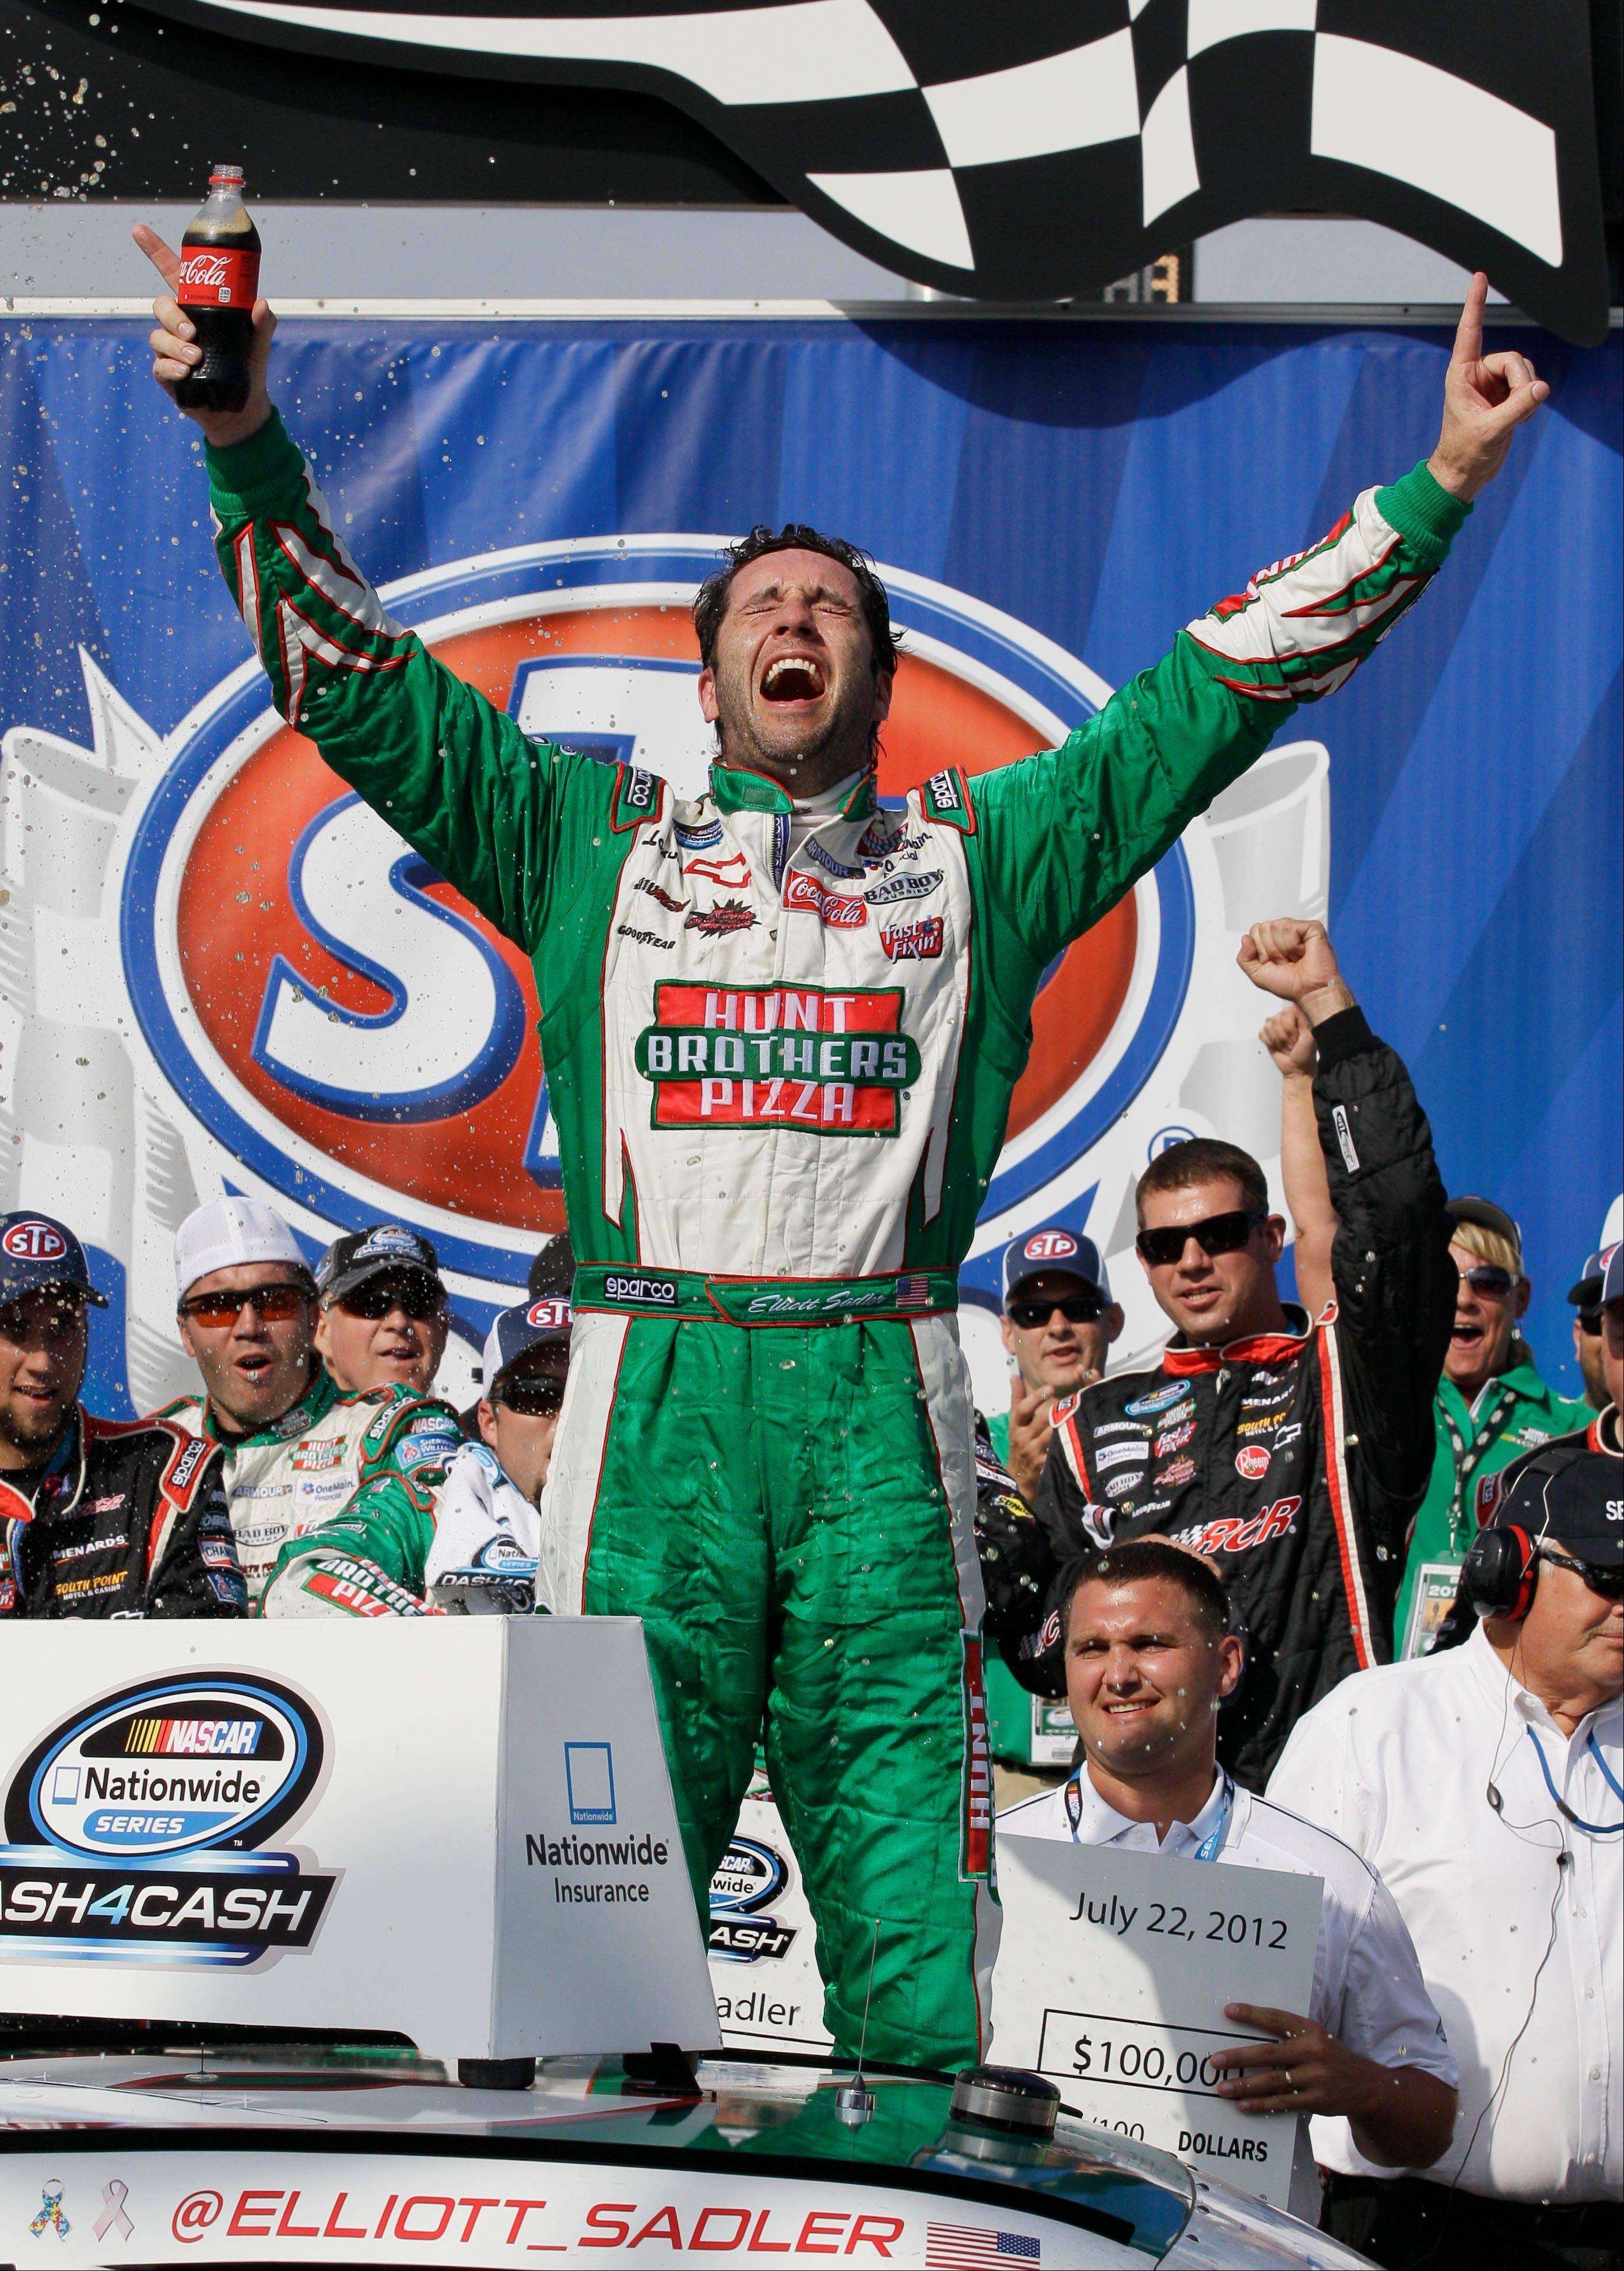 Elliott Sadler celebrates in victory lane after winning the NASCAR Nationwide Series auto race Sunday at Chicagoland Speedway in Joliet.